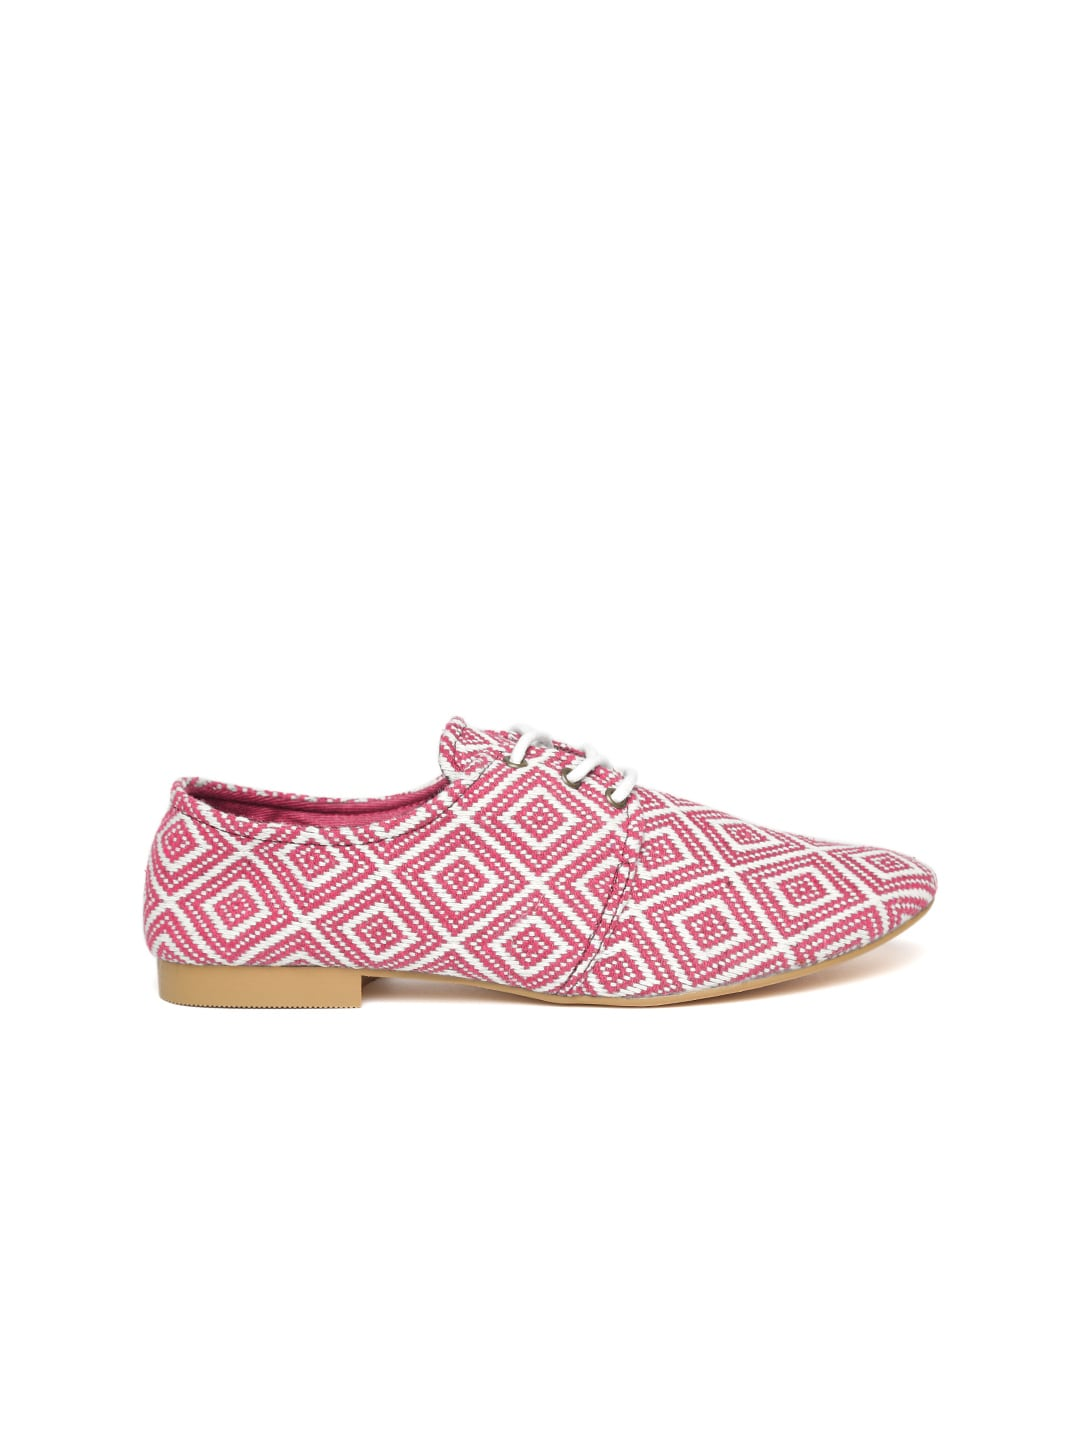 United Colors of Benetton Women Pink & White Patterned Derbys